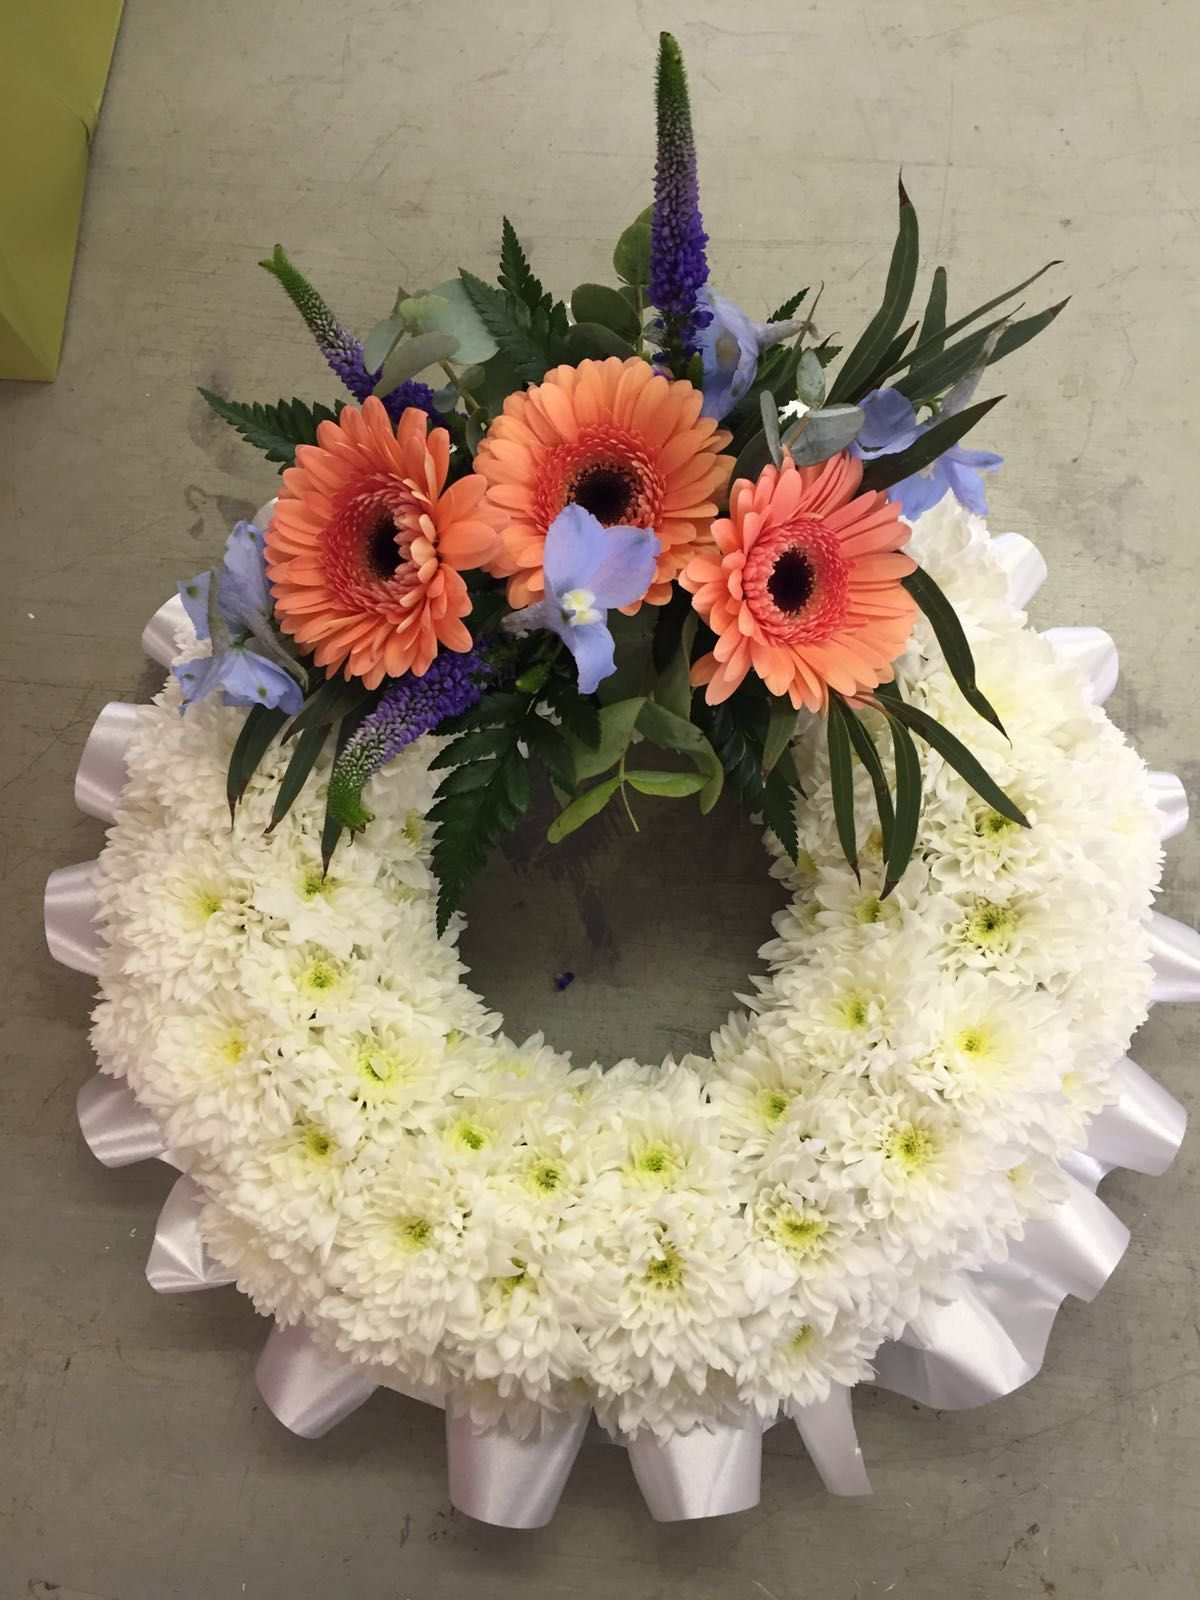 Pin by the flower stylist on the flower stylist funeral flowers find this pin and more on the flower stylist funeral flowers by annie63ann izmirmasajfo